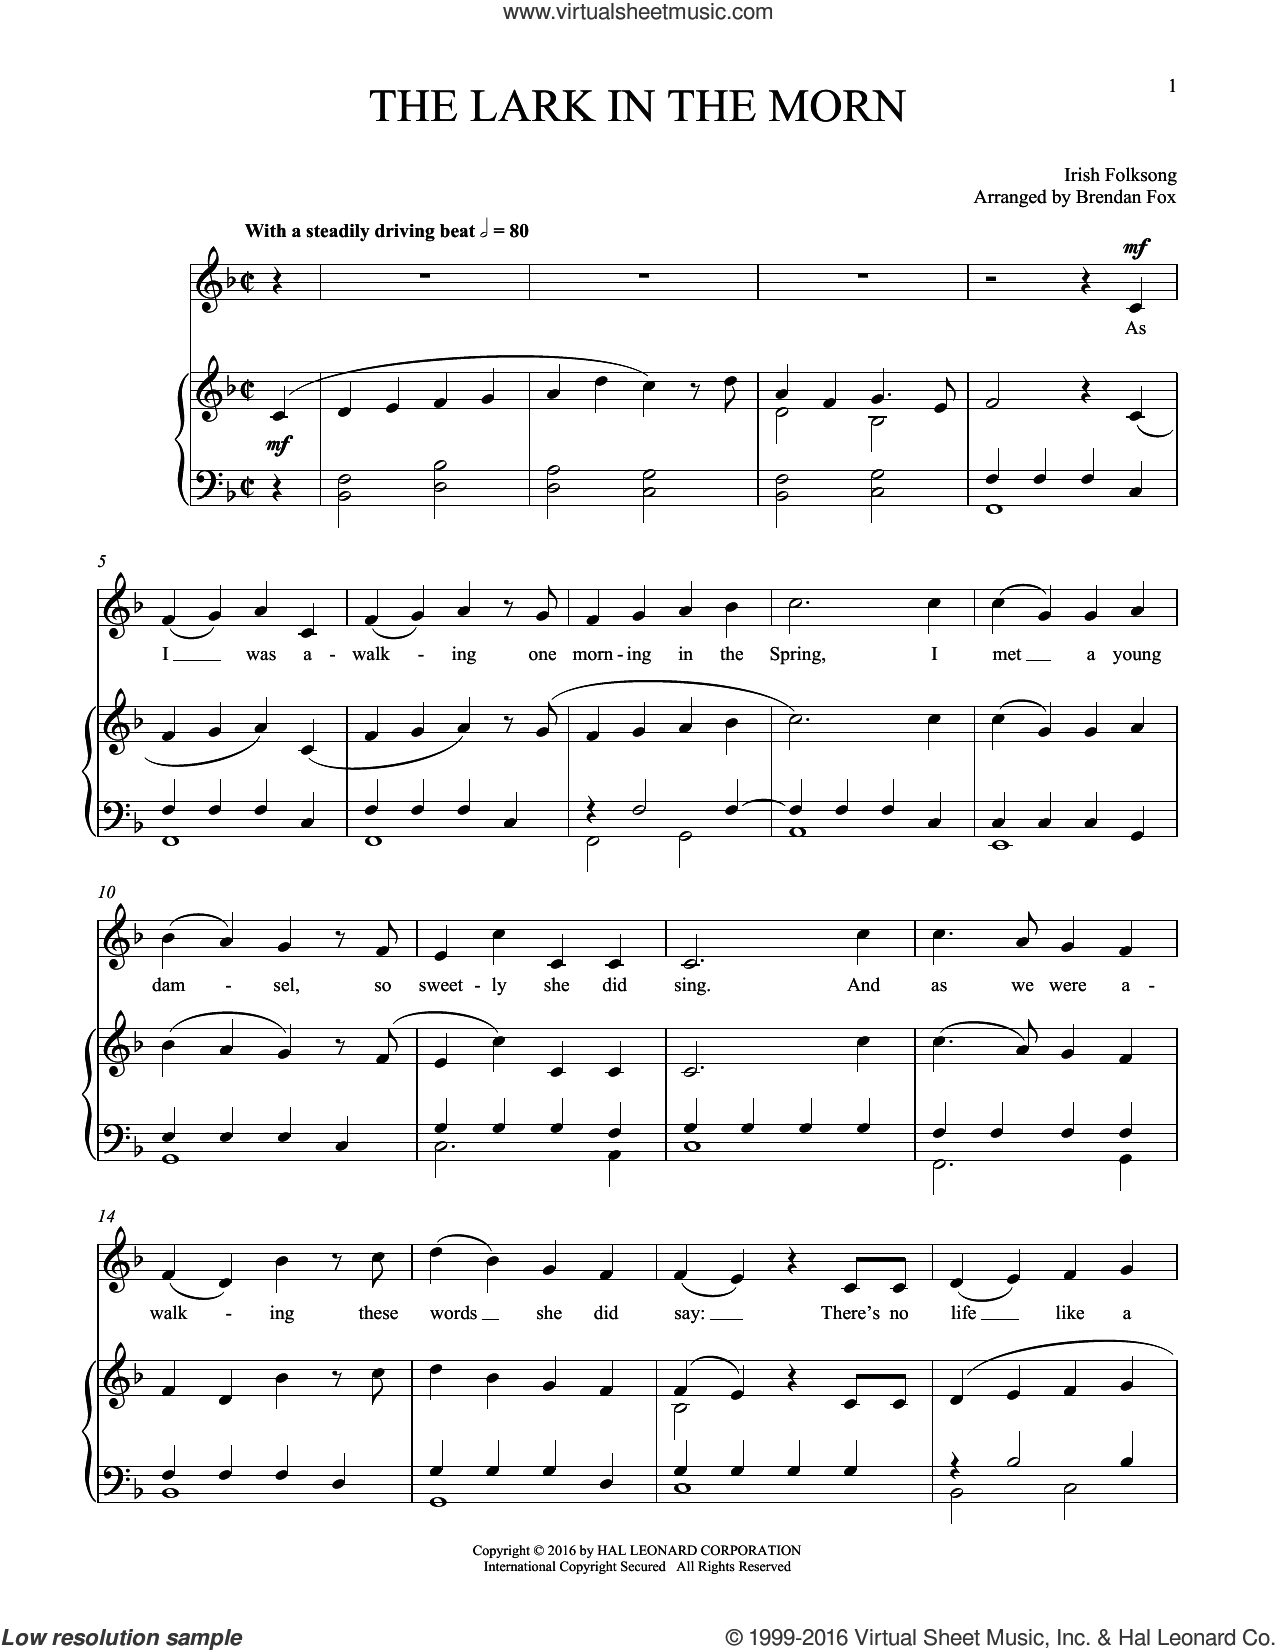 Lark In The Morning sheet music for voice and piano, intermediate